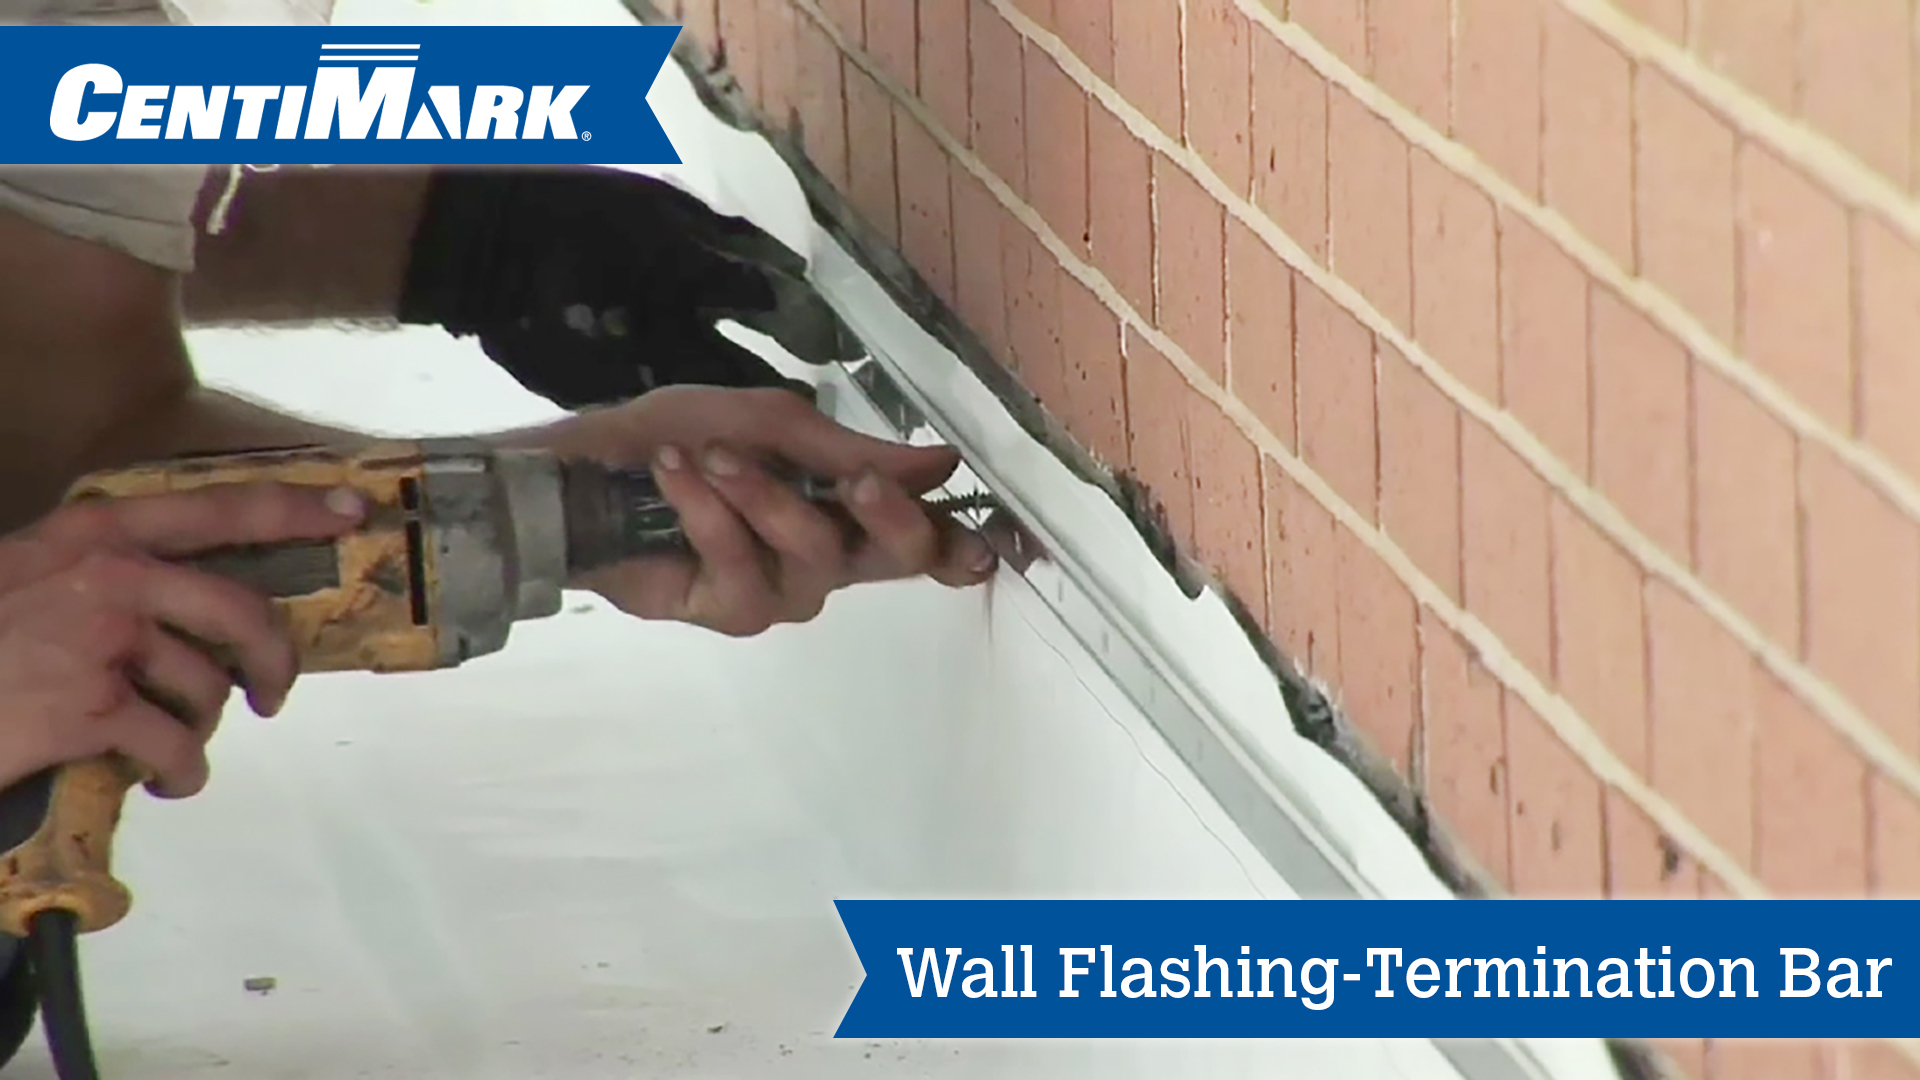 Wall To Roof Flashing Using Termination Bar Video